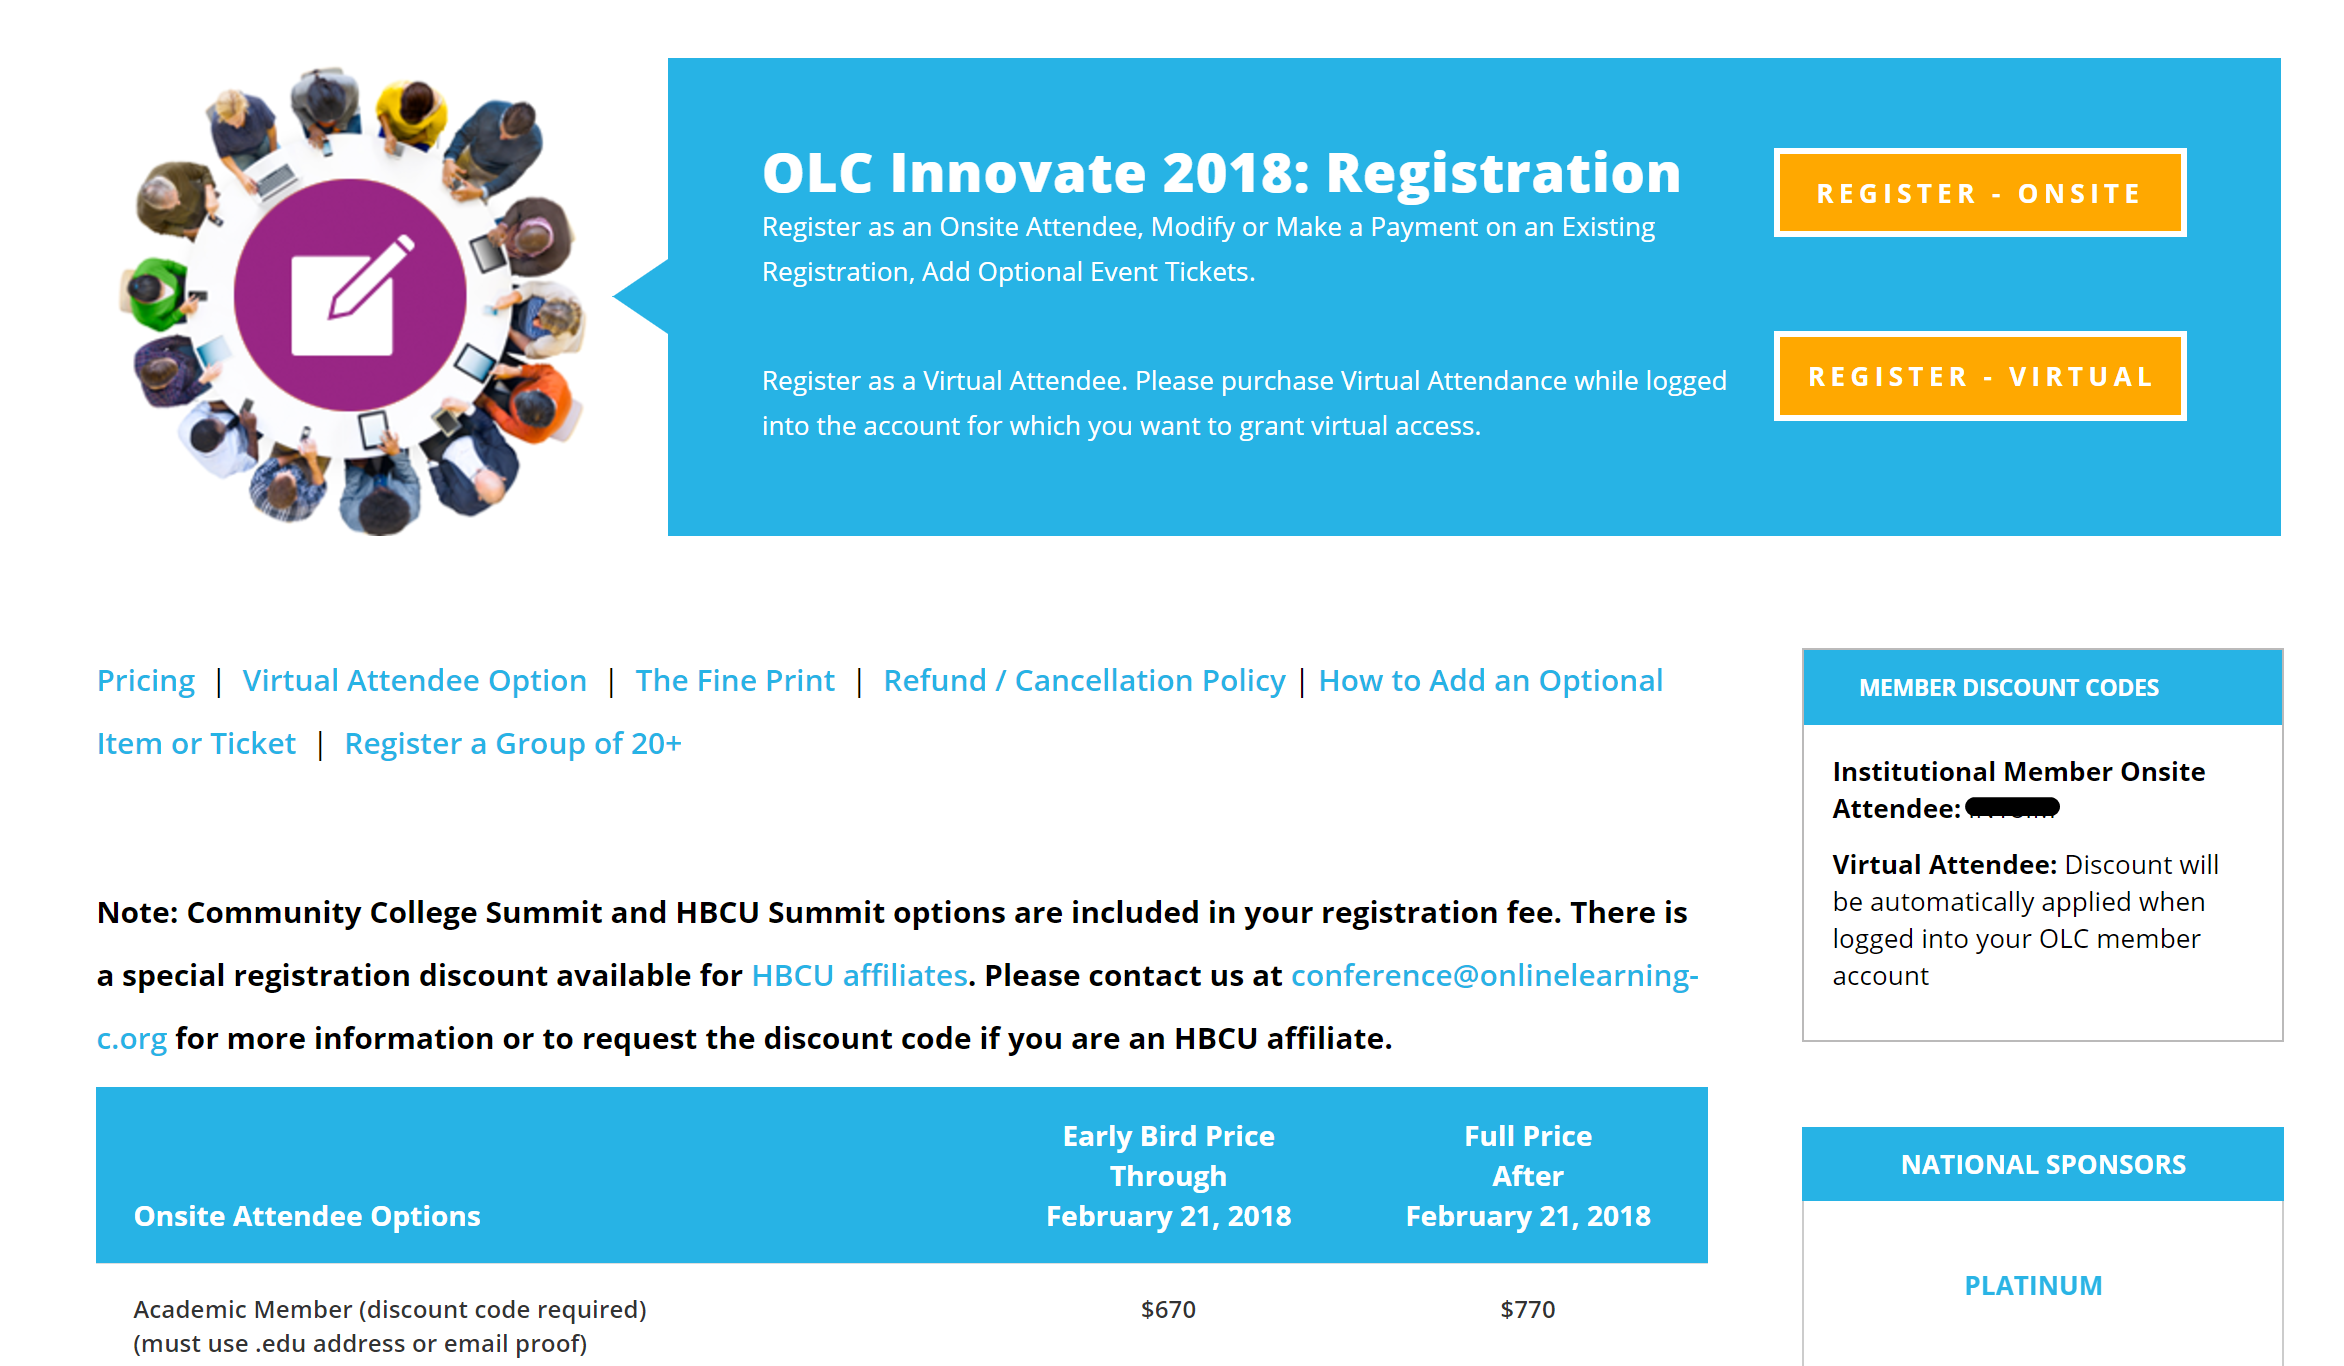 OLC Innovate 2018 - Member Discount Code Location